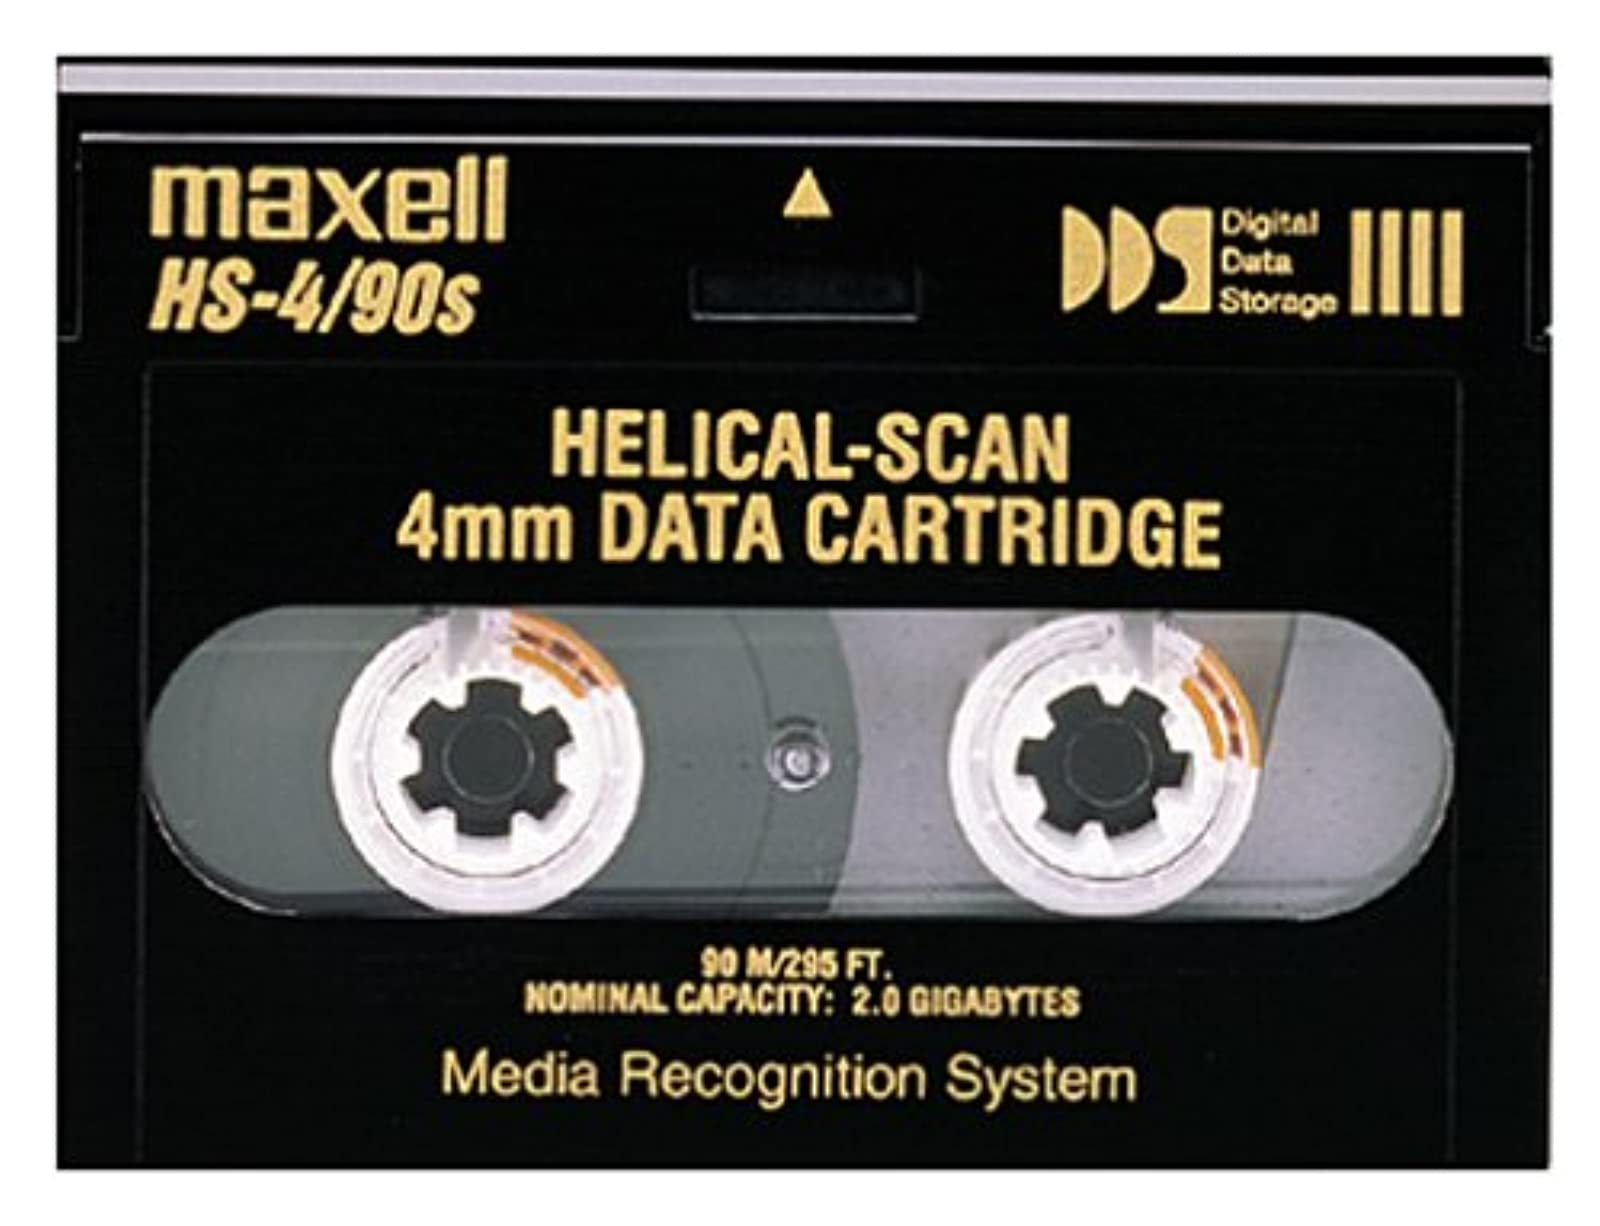 Maxell 2.0GB 91.5M HS-4/90S 4MM Data Cartridge For Helical Scan Drives